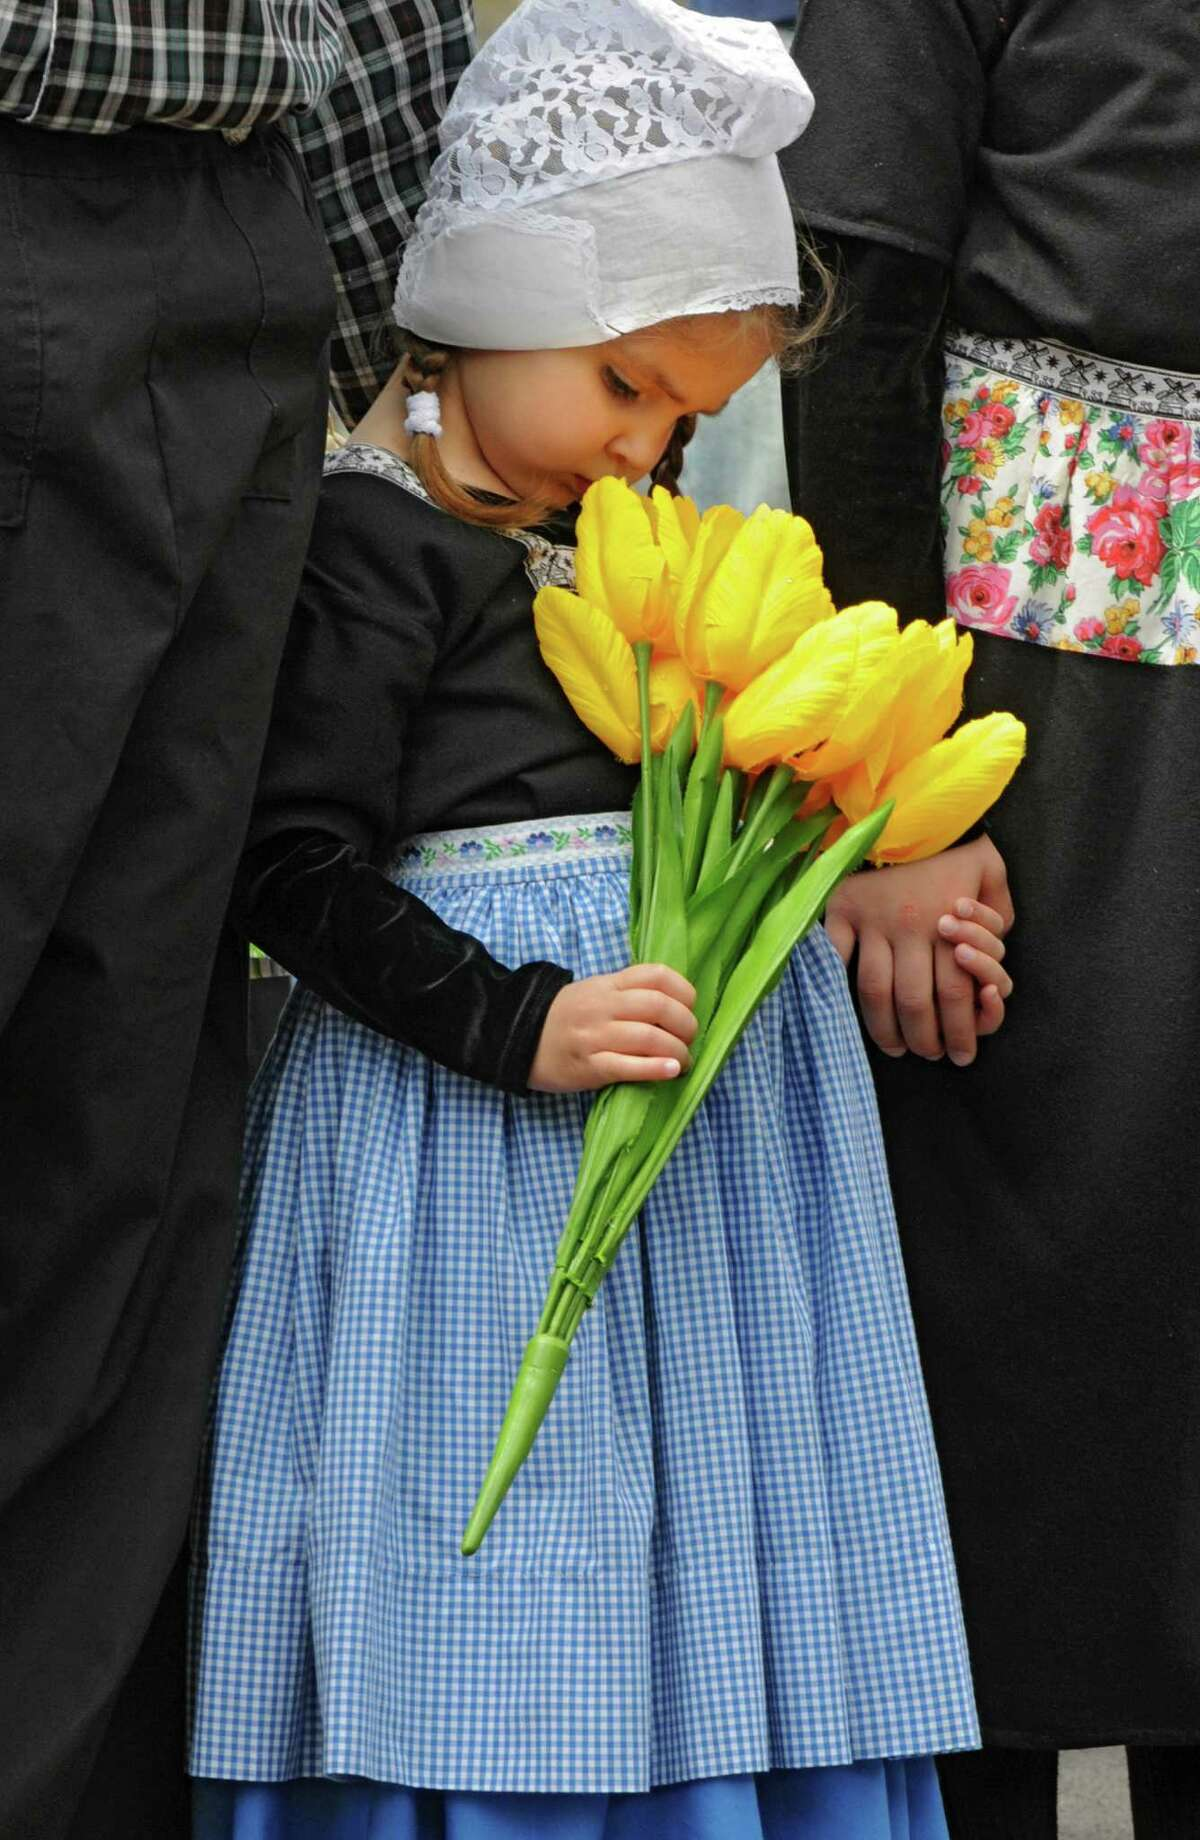 Callista Schermerhorn, age 3 of Guilderland, stops to smell the tulips while dressed in Dutch costume at the 2012 Tulip Festival Street Scrubbing Friday, May 11, 2012 in Albany, N.Y. (Lori Van Buren / Times Union)